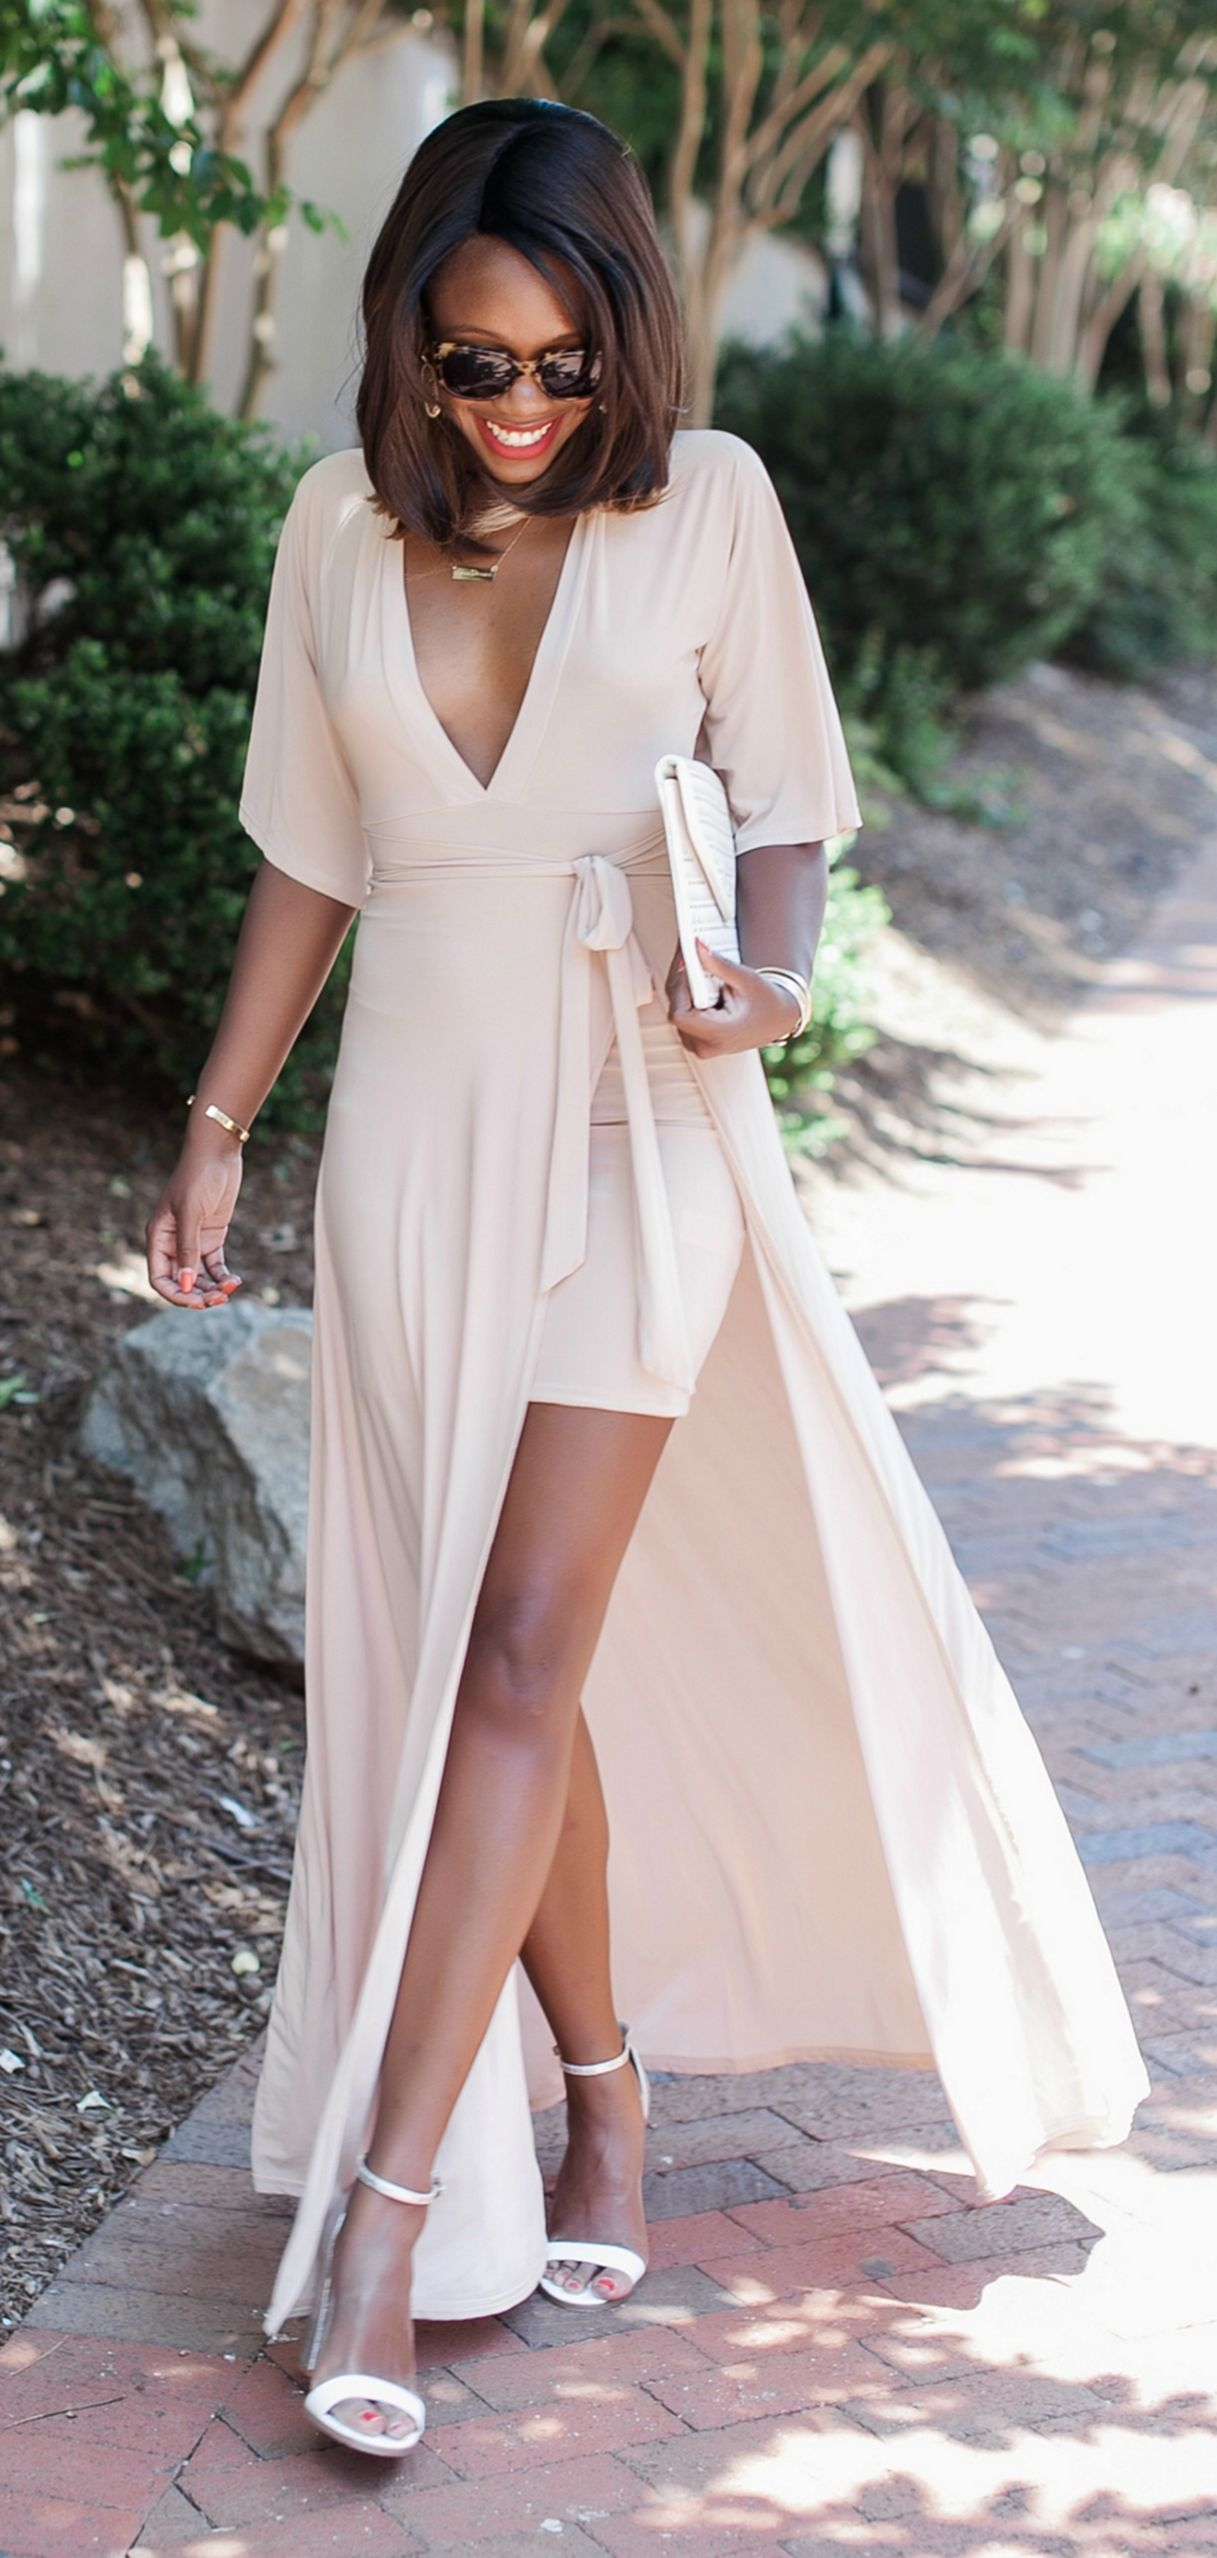 10 Awesome Guest Summer Wedding Outfit Ideas Wedding Guest Outfit Summer Wedding Guest Dress Summer Guest Attire [ 2558 x 1217 Pixel ]